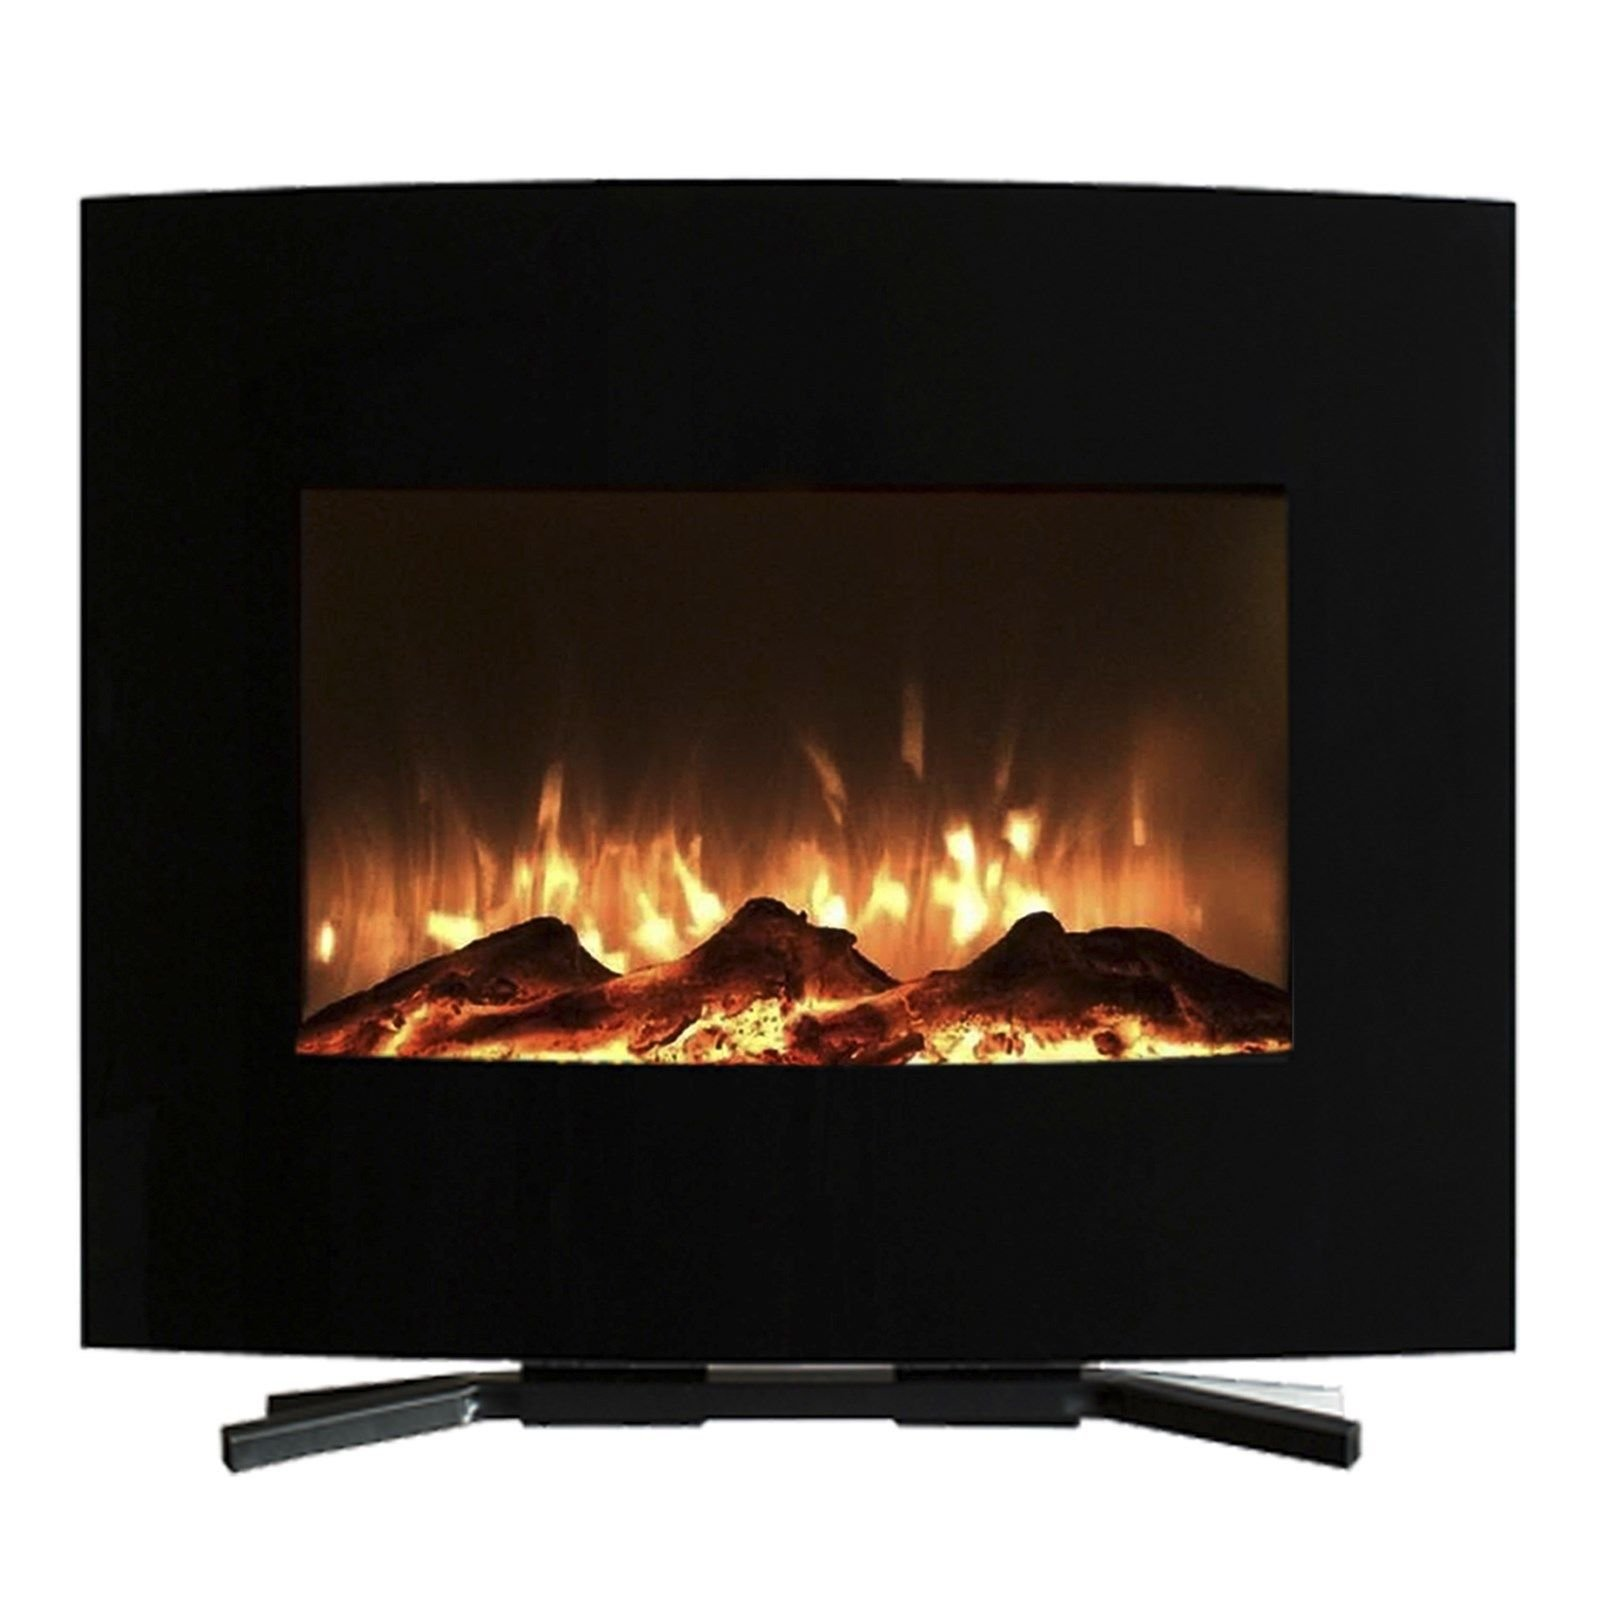 Mini Curved Black Fireplace Wall Mount & Floor Stand 25 x 20 Inches Remote by Love+Grace (Image #3)